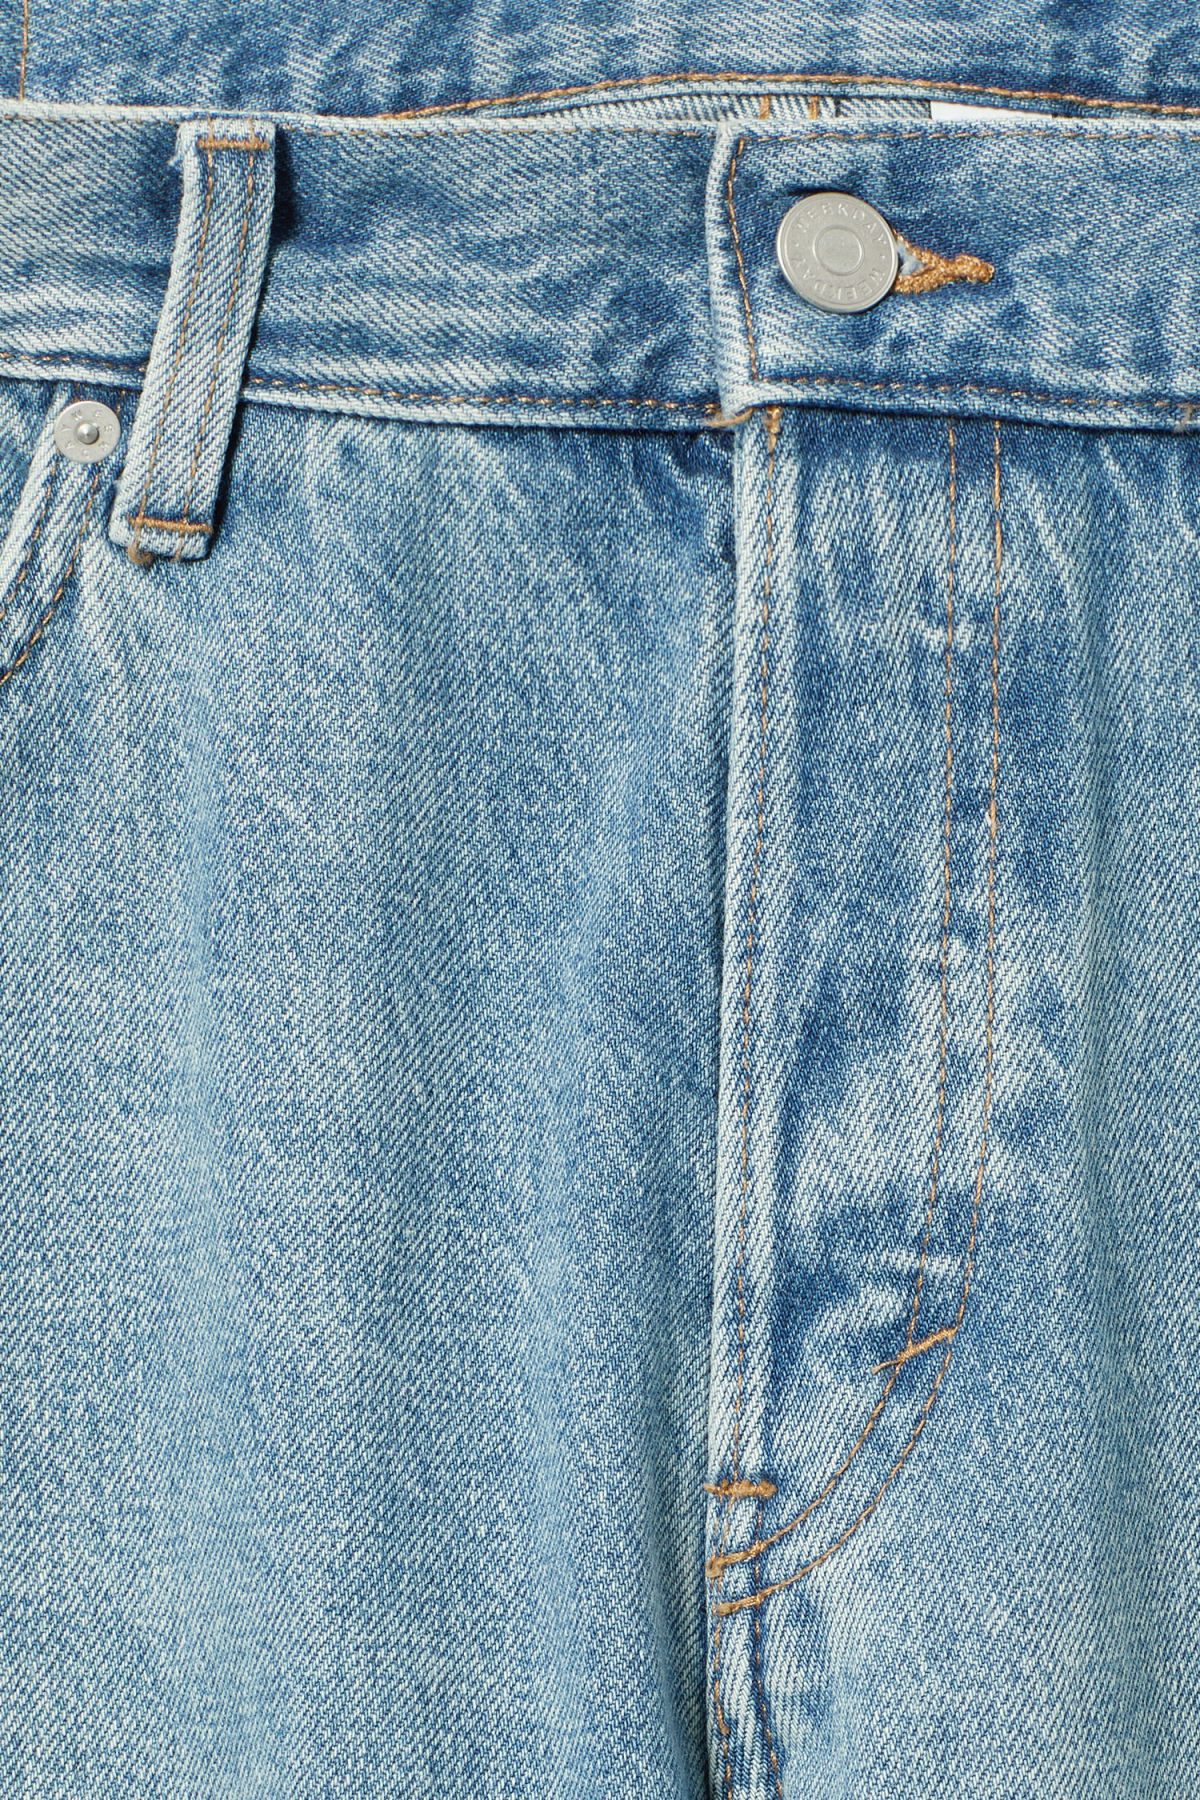 Detailed image of Weekday barrel seven blue jeans in blue